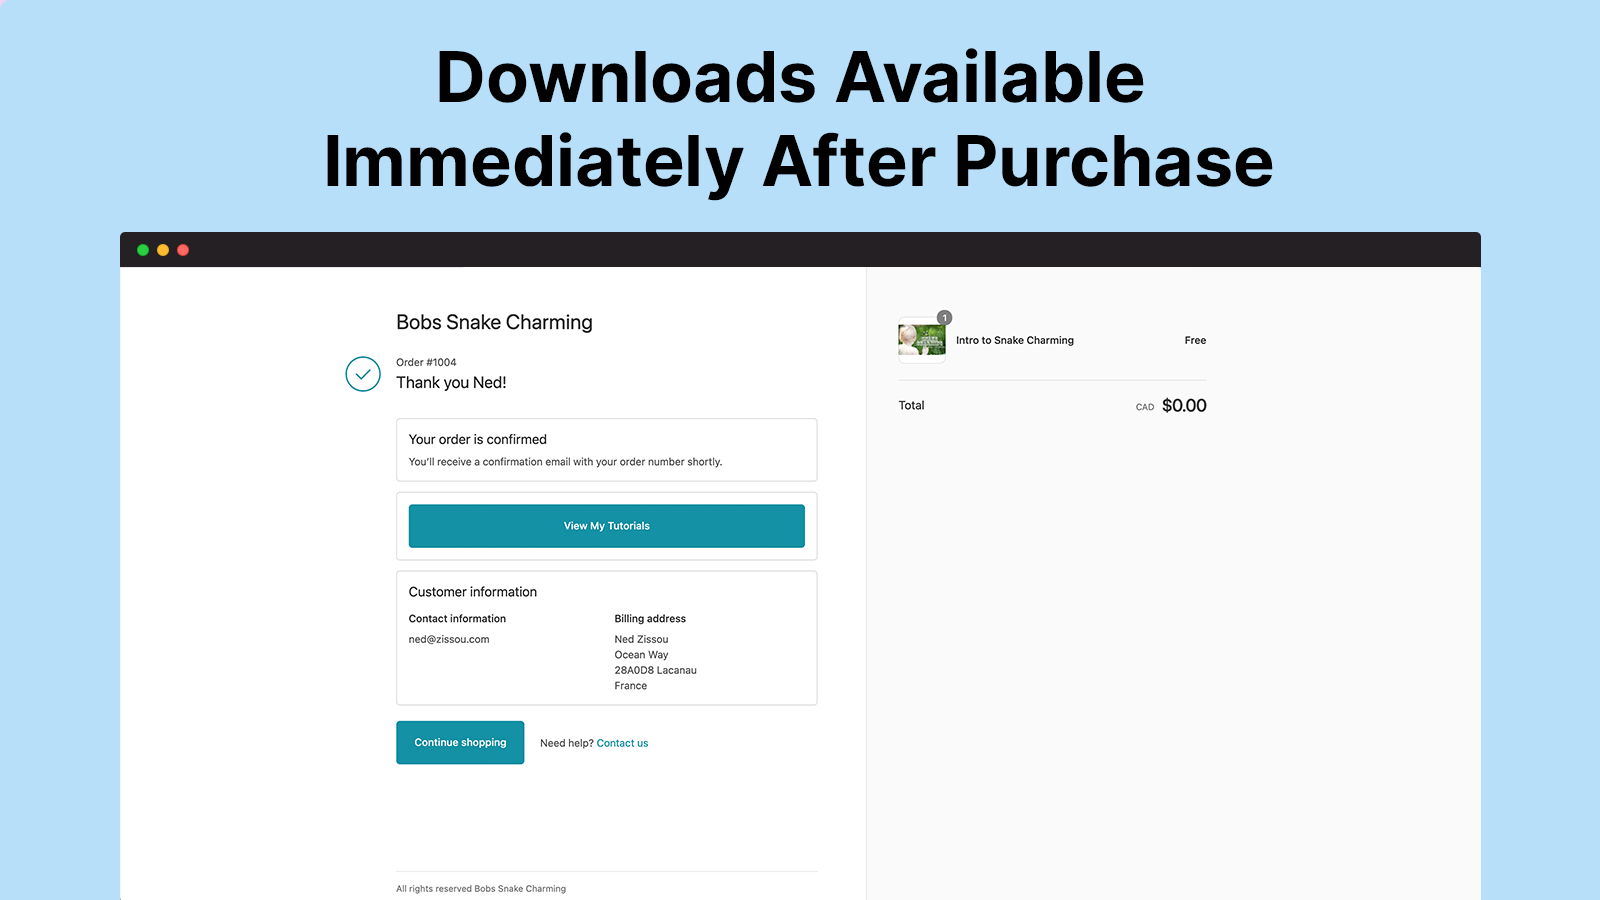 Immediate download access for purchasers